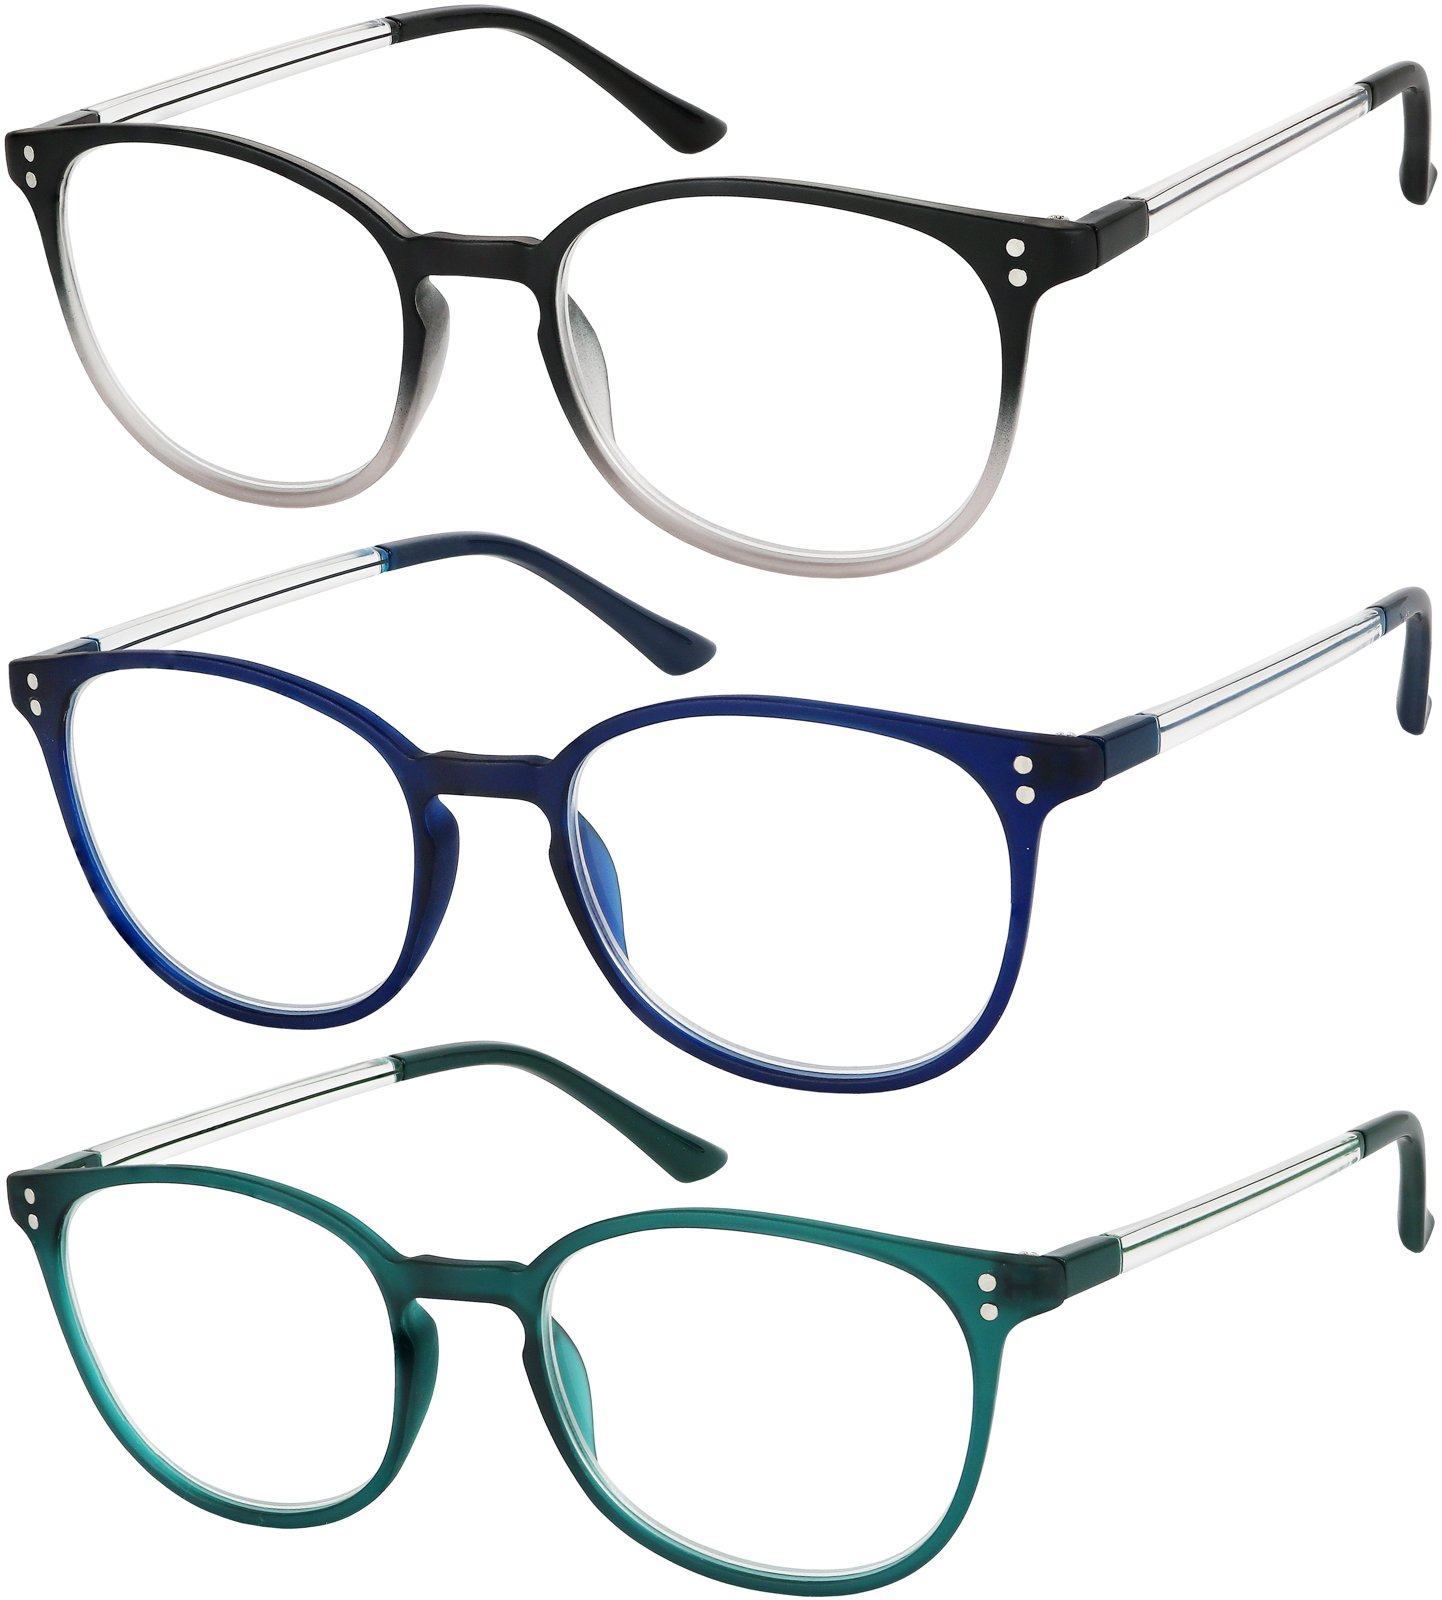 Reading Glasses 3 Pair Stylish Color Readers Fashion Glasses for Reading Men & Women +2.5 by Success Eyewear